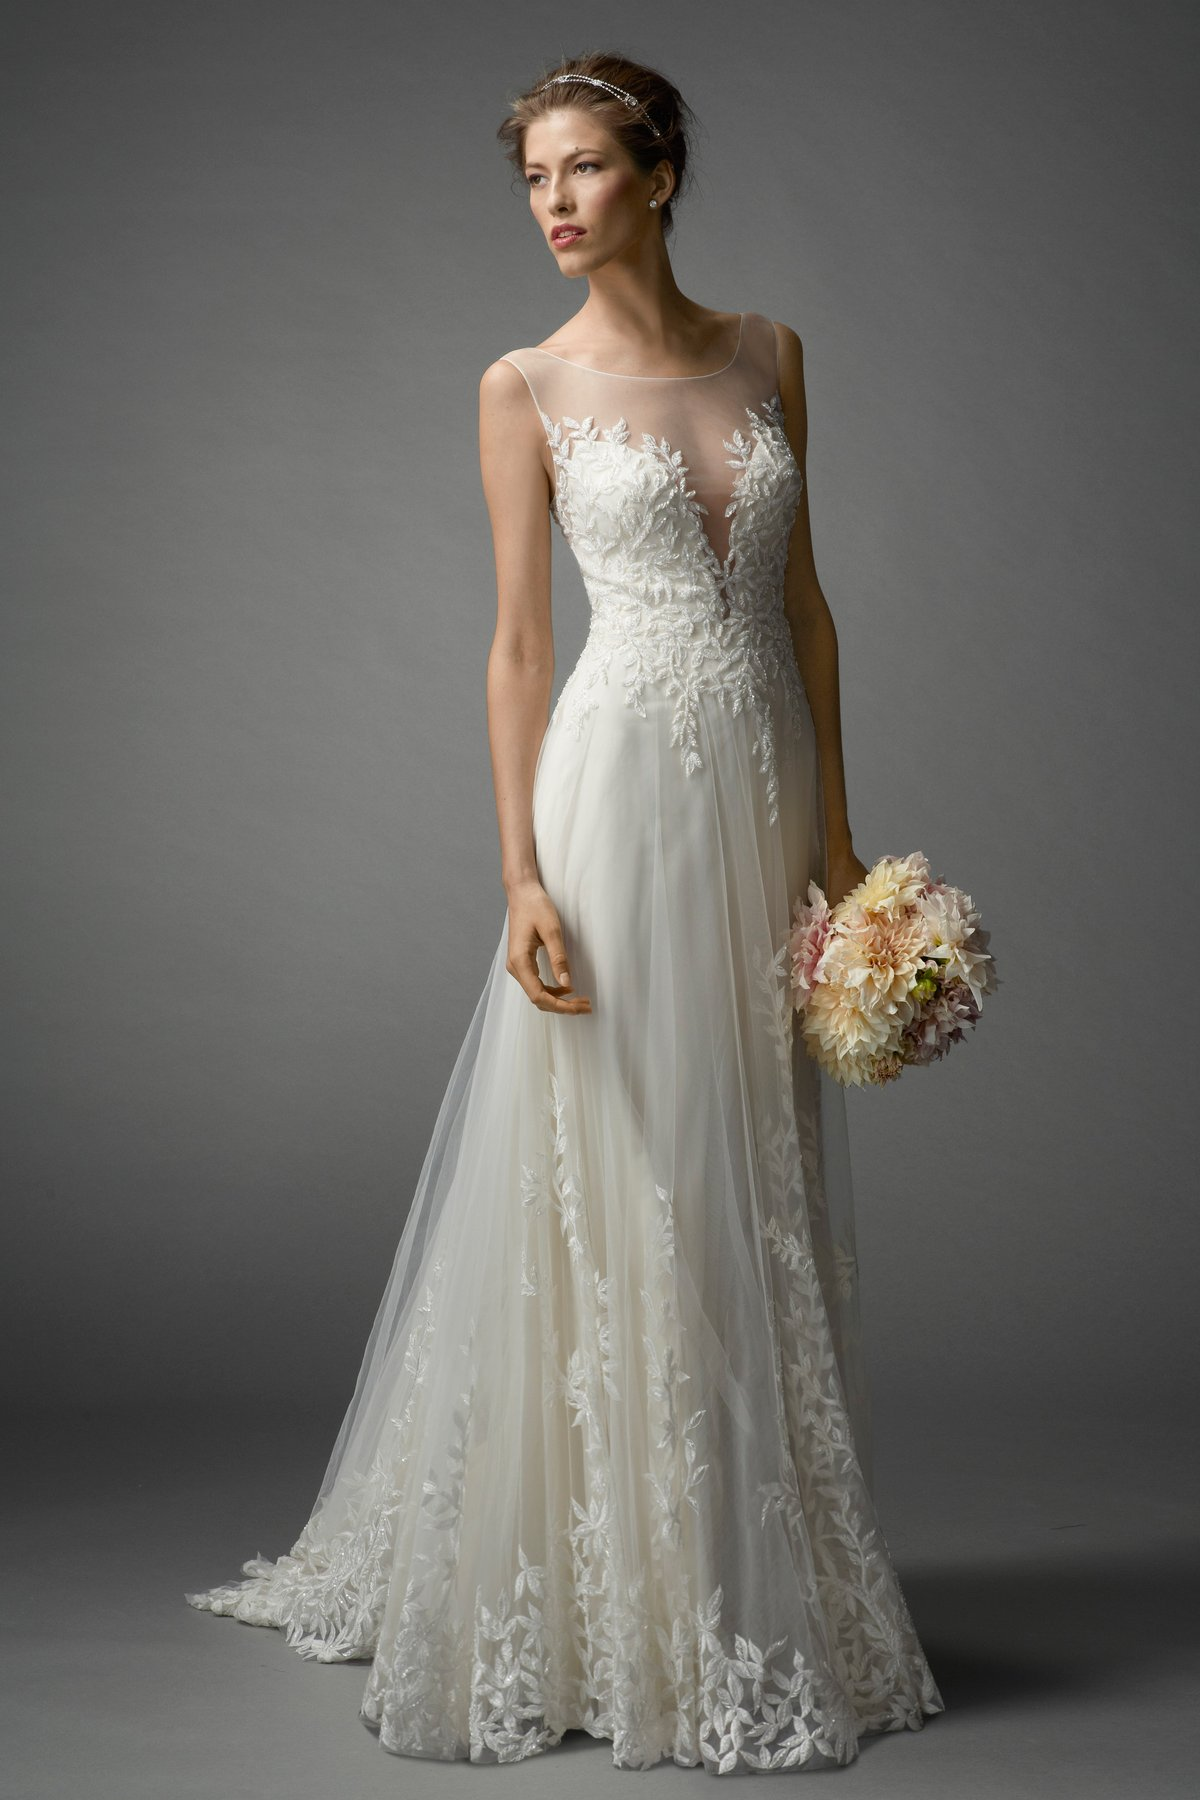 Best wedding dresses dallas stardust celebrations for Custom made wedding dresses dallas